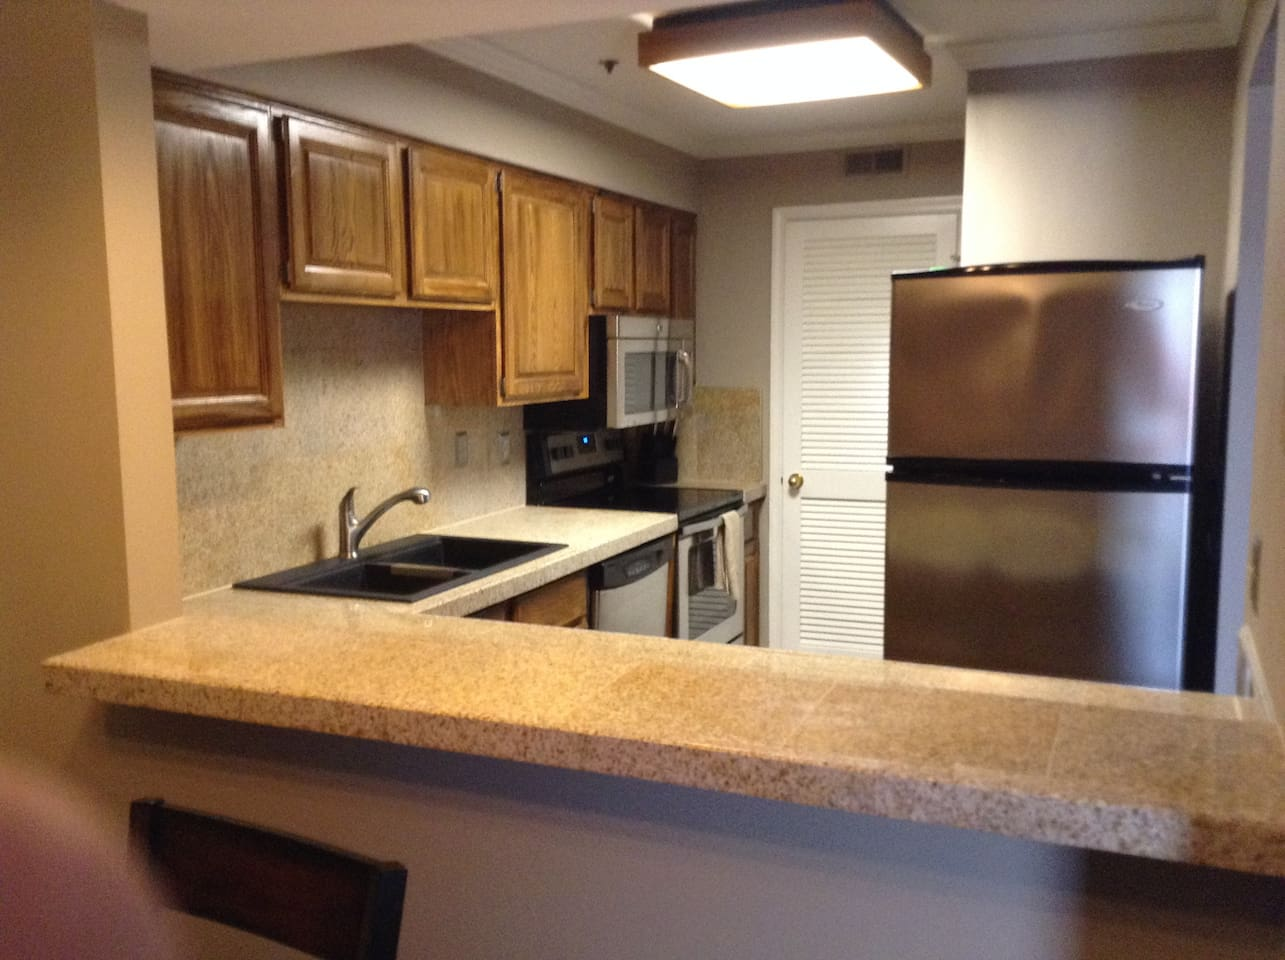 Granite countertops and full granite backsplash. Granite composite double sink. New SS Appliances. Solid wood cabinets with pull out shelves.